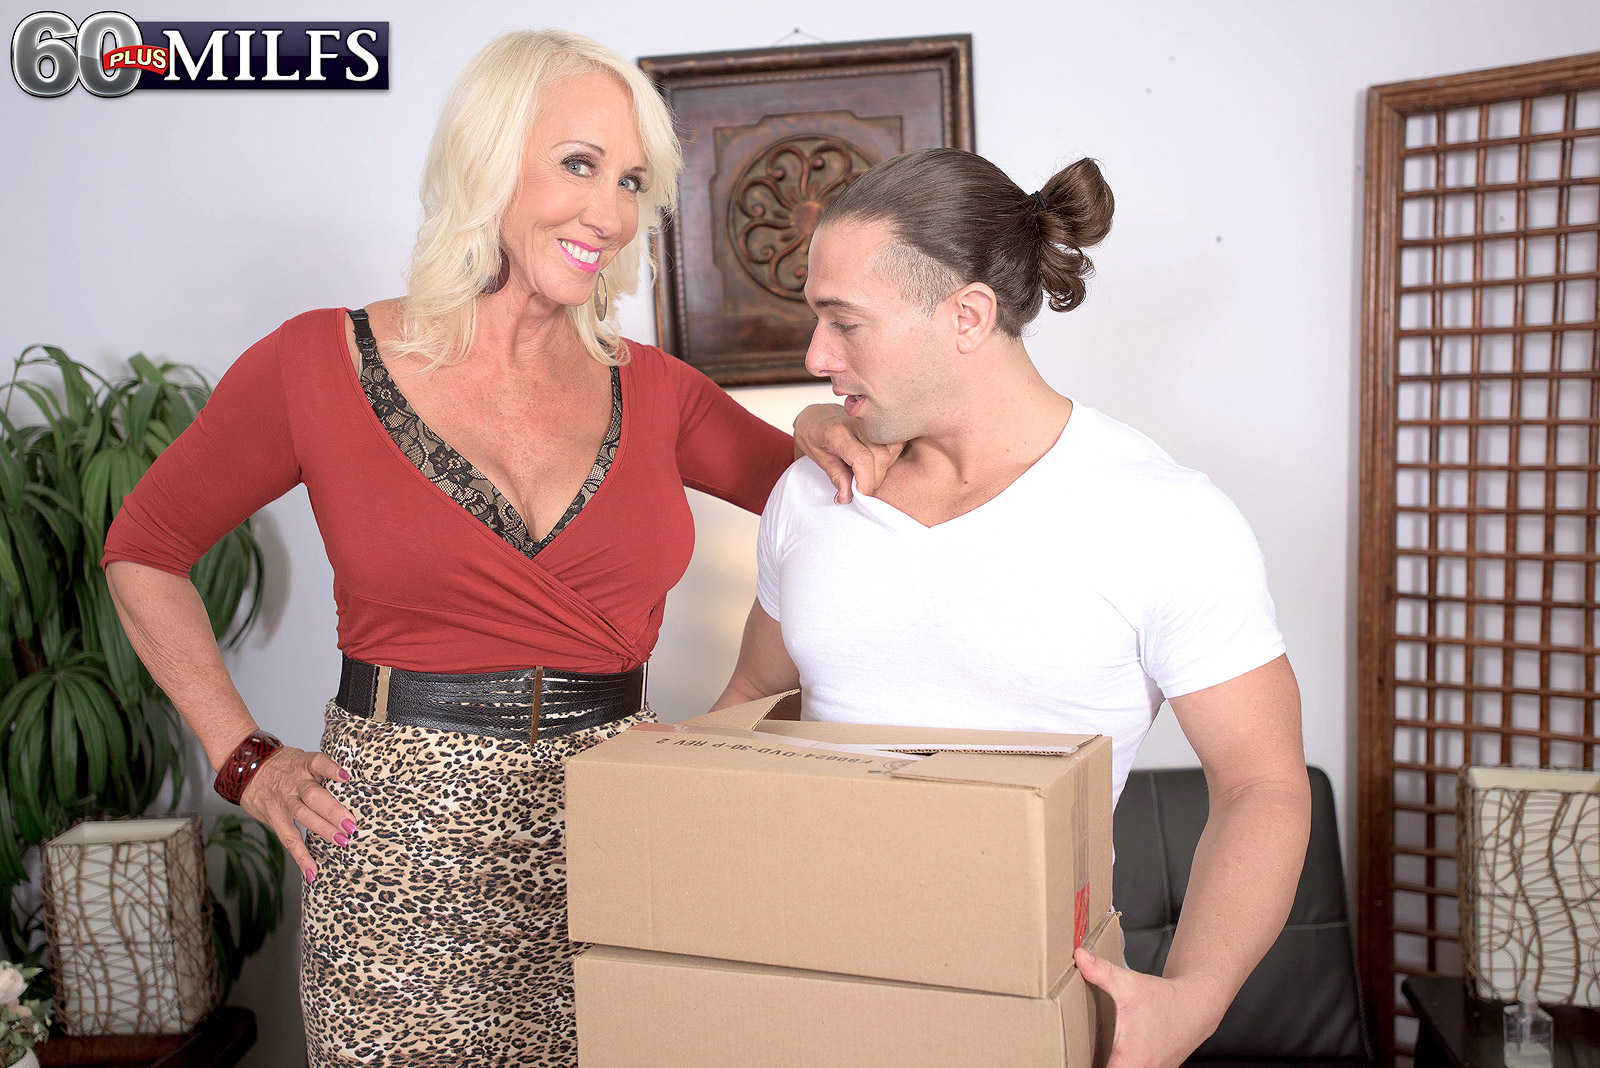 old dominating lady abusing the prime delivery service #1